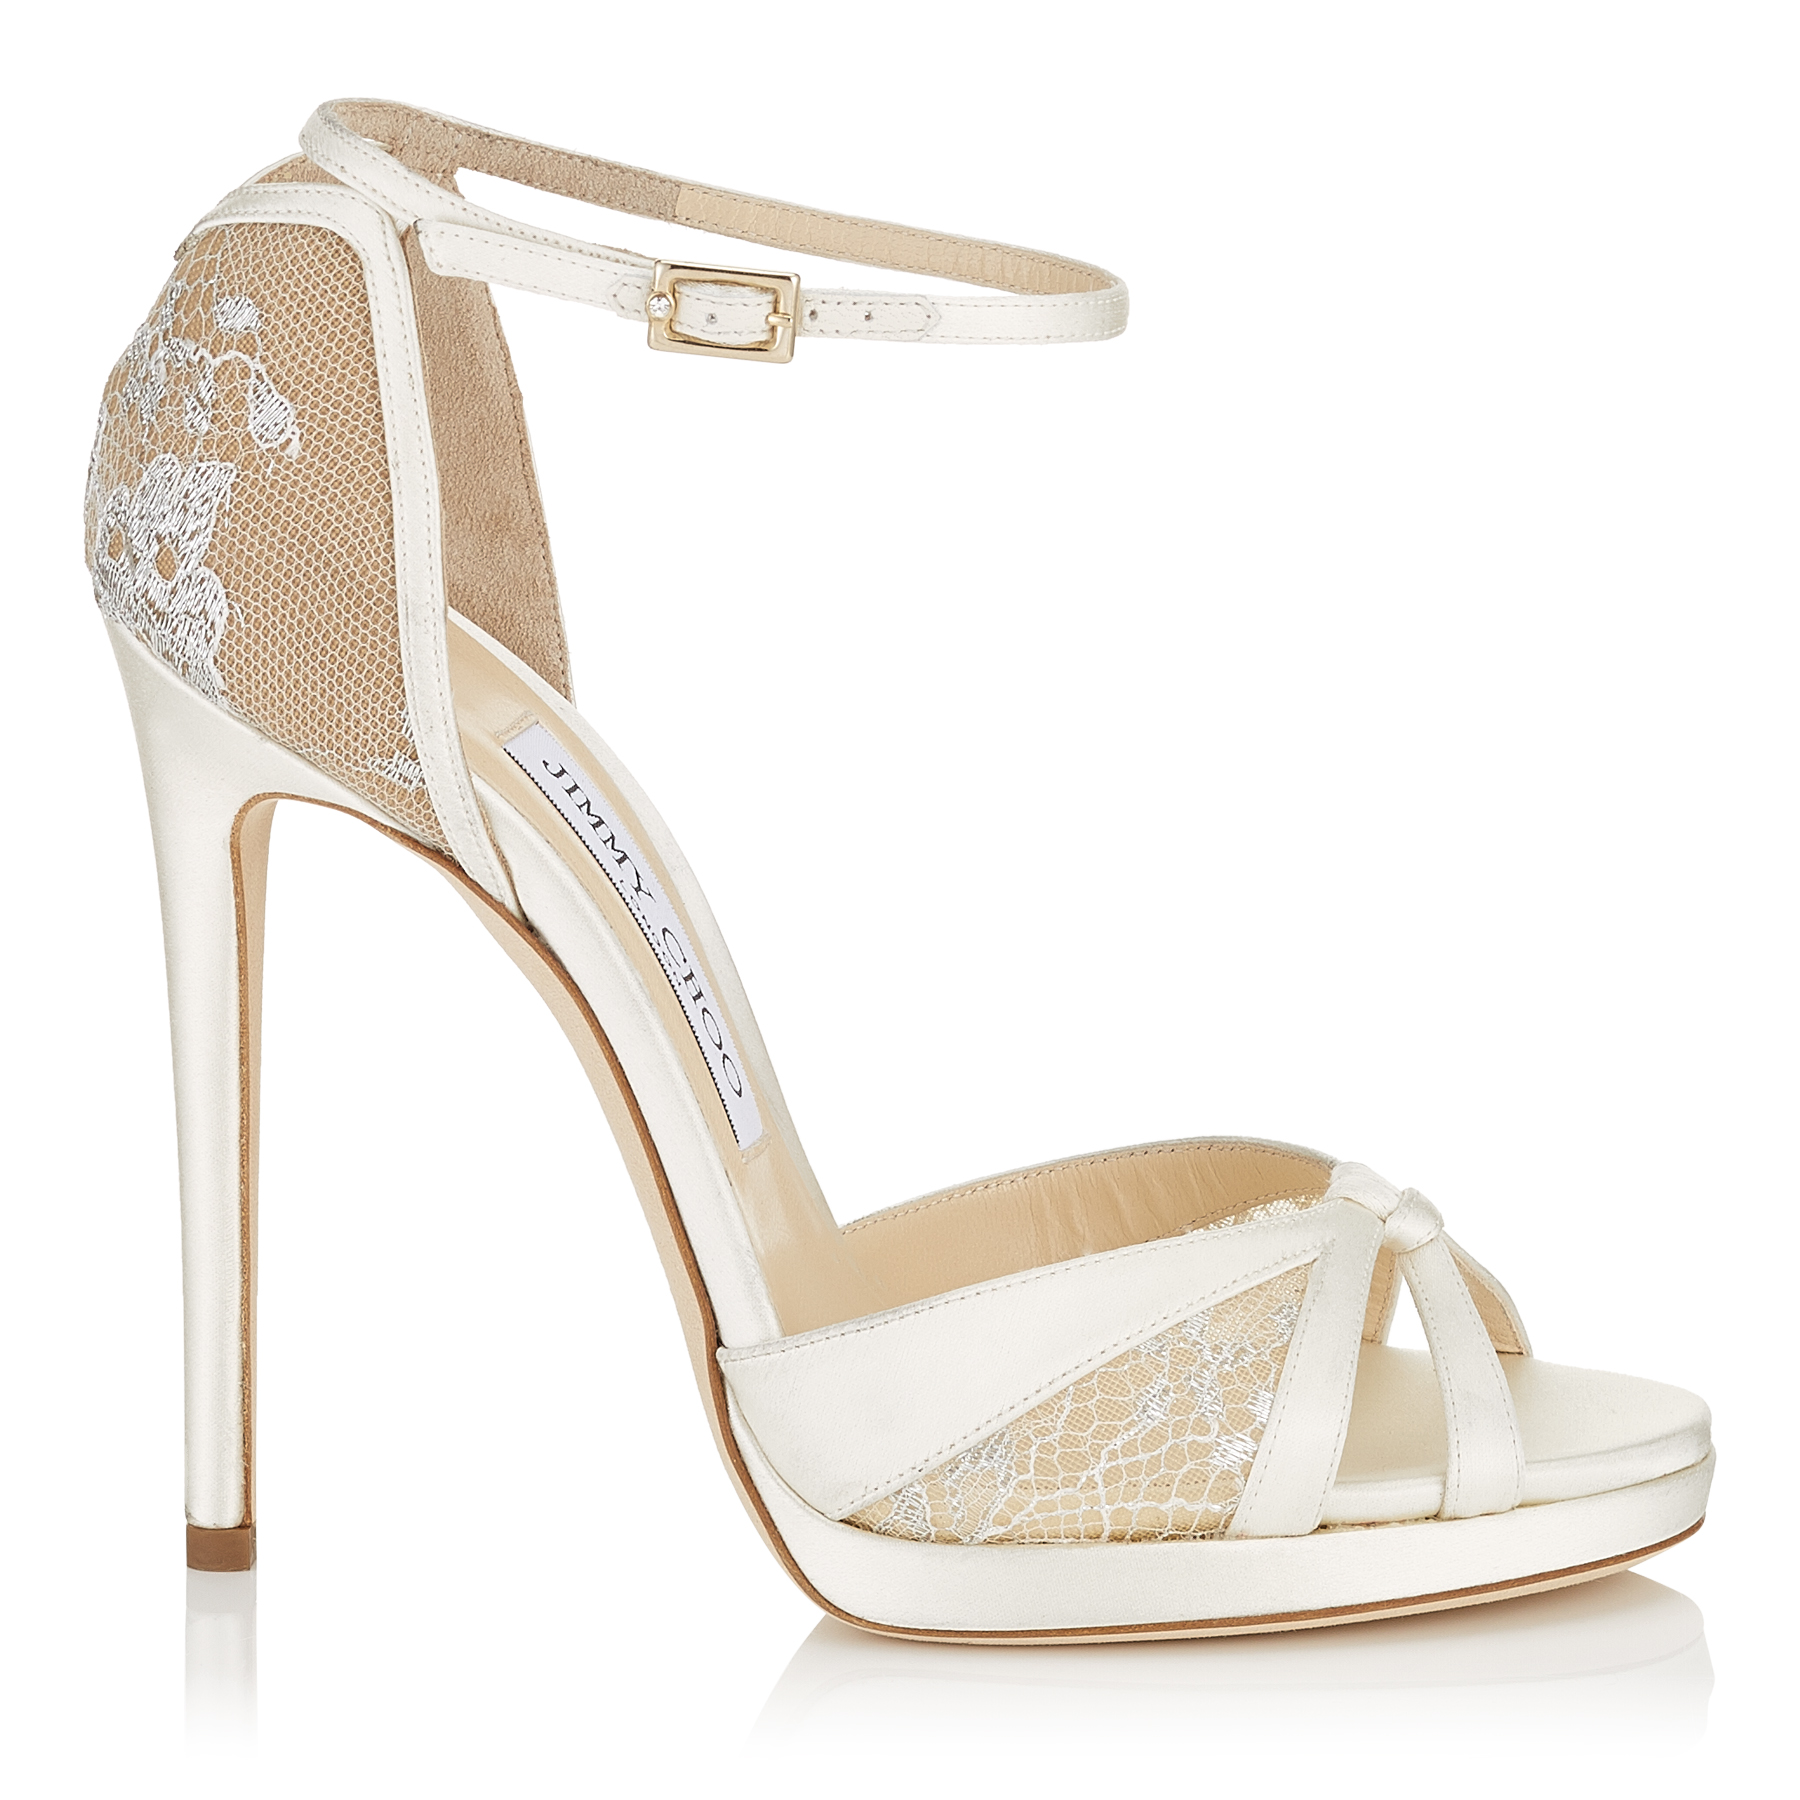 TALIA 120 Ivory Satin and White Lace Sandals